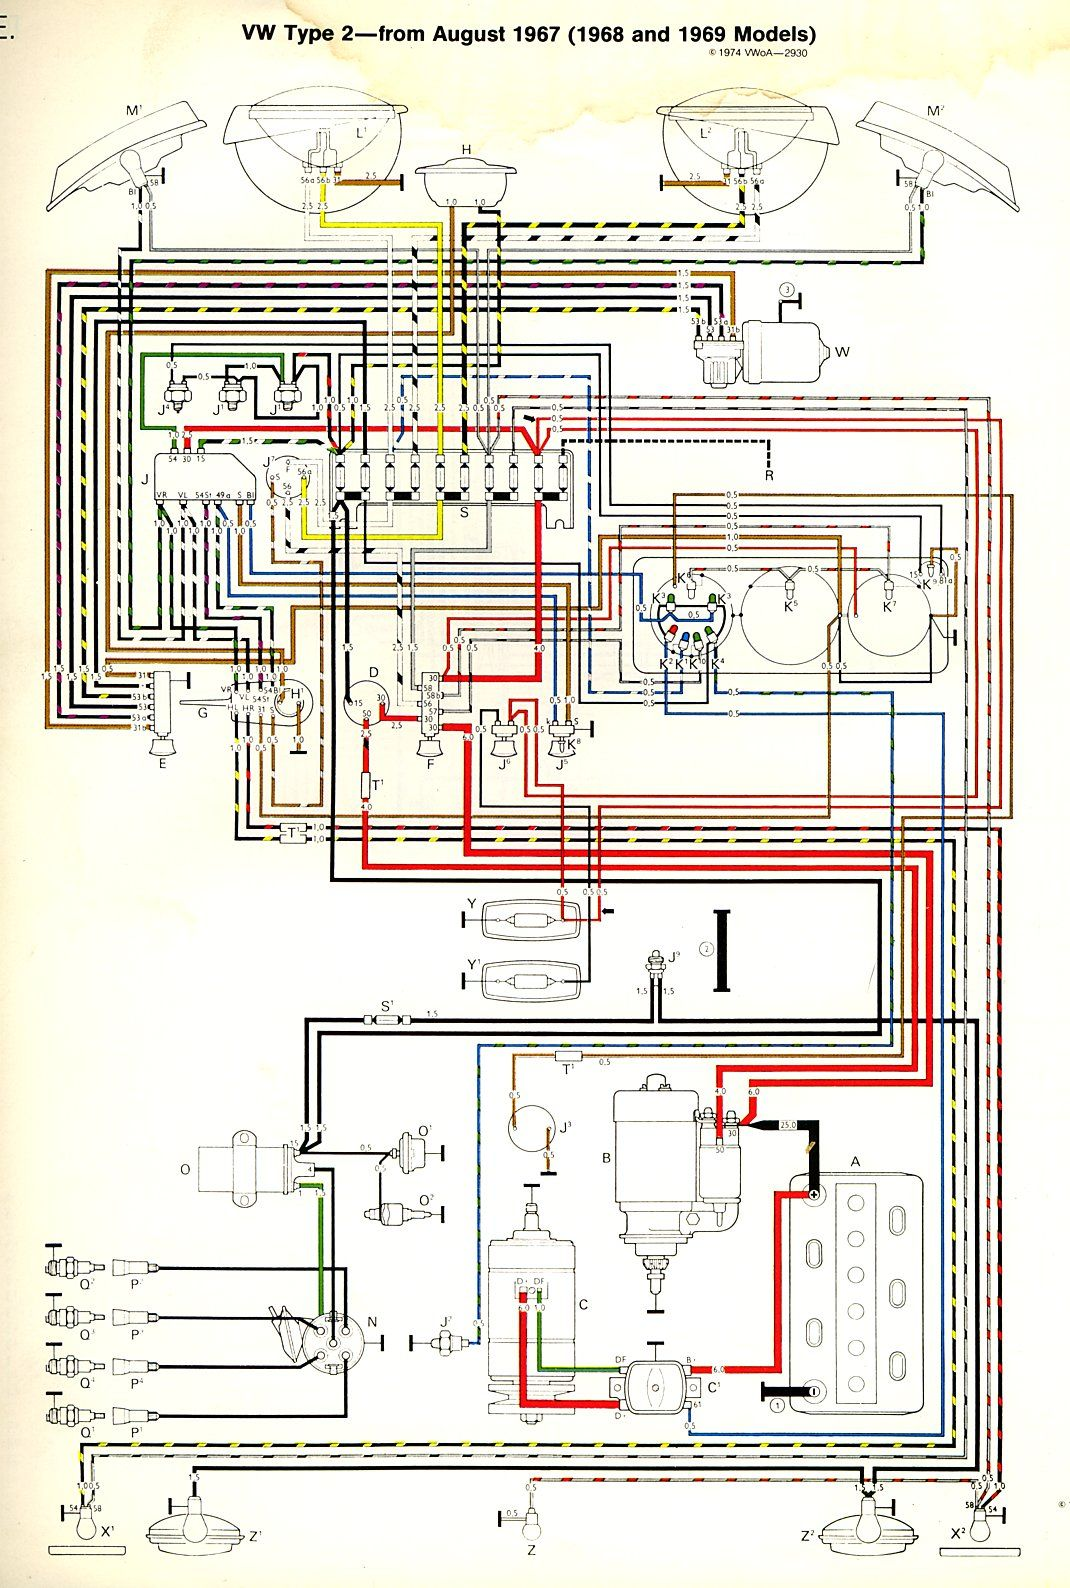 E B Add Ea B C F on Honda Xr 200 Wiring Diagram